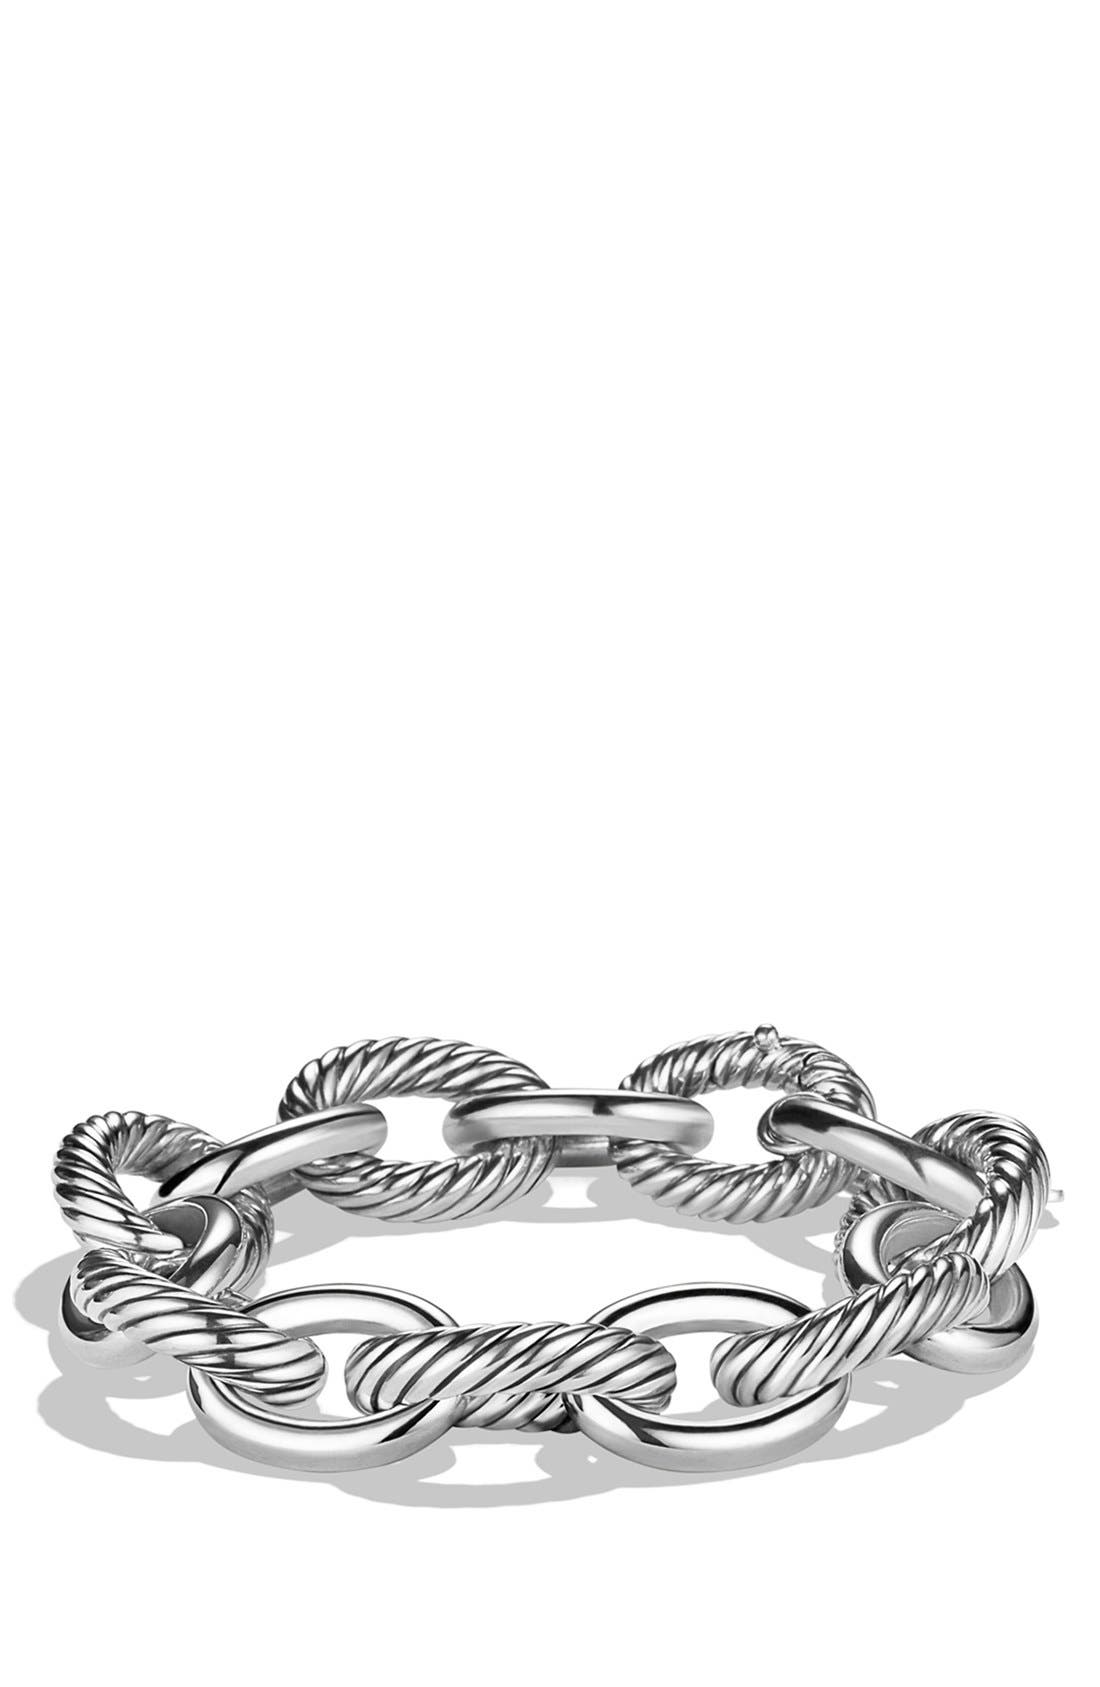 David Yurman 'Oval' Extra Large Link Bracelet